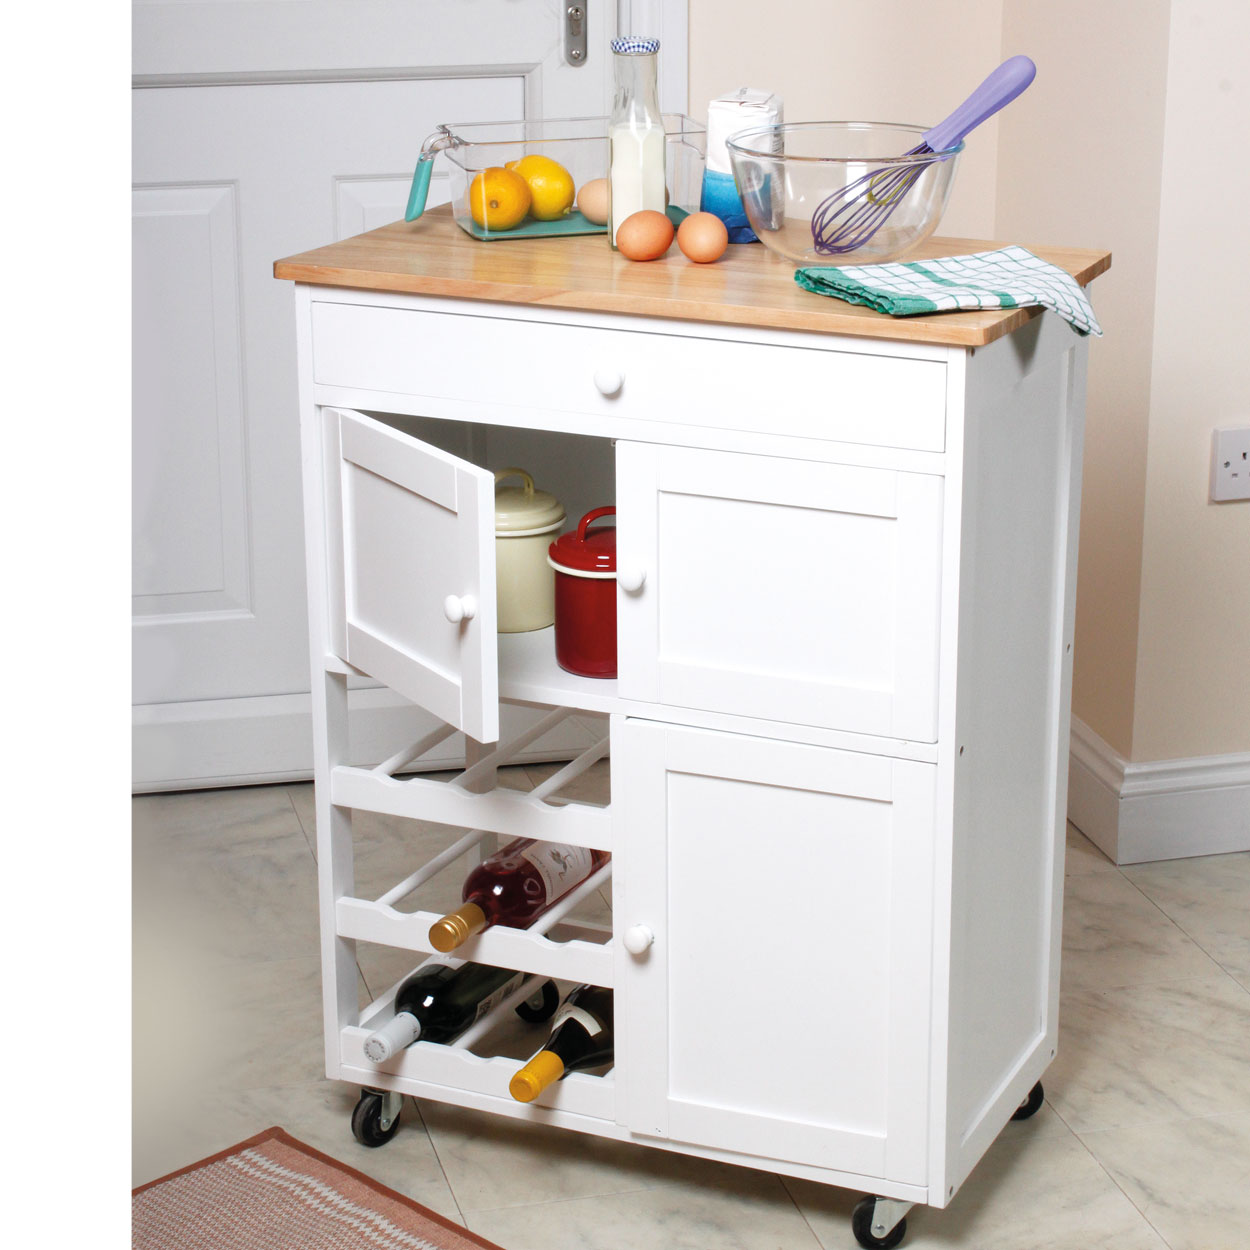 Kitchen Trolley Home Design Ideas And Pictures